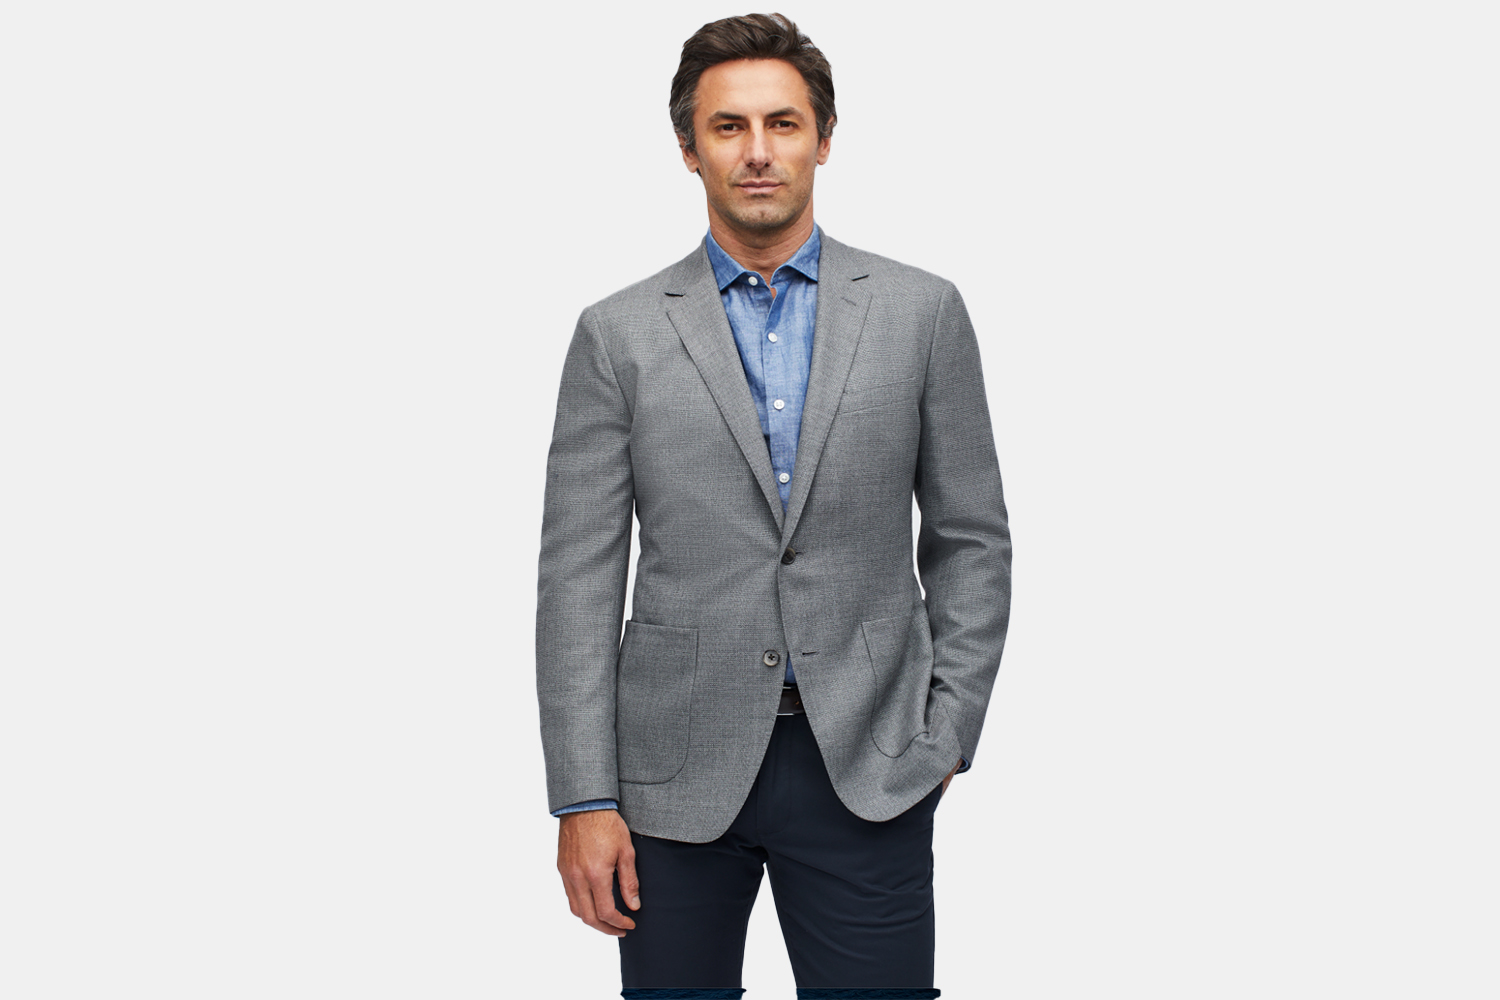 a man in a grey suit jacket